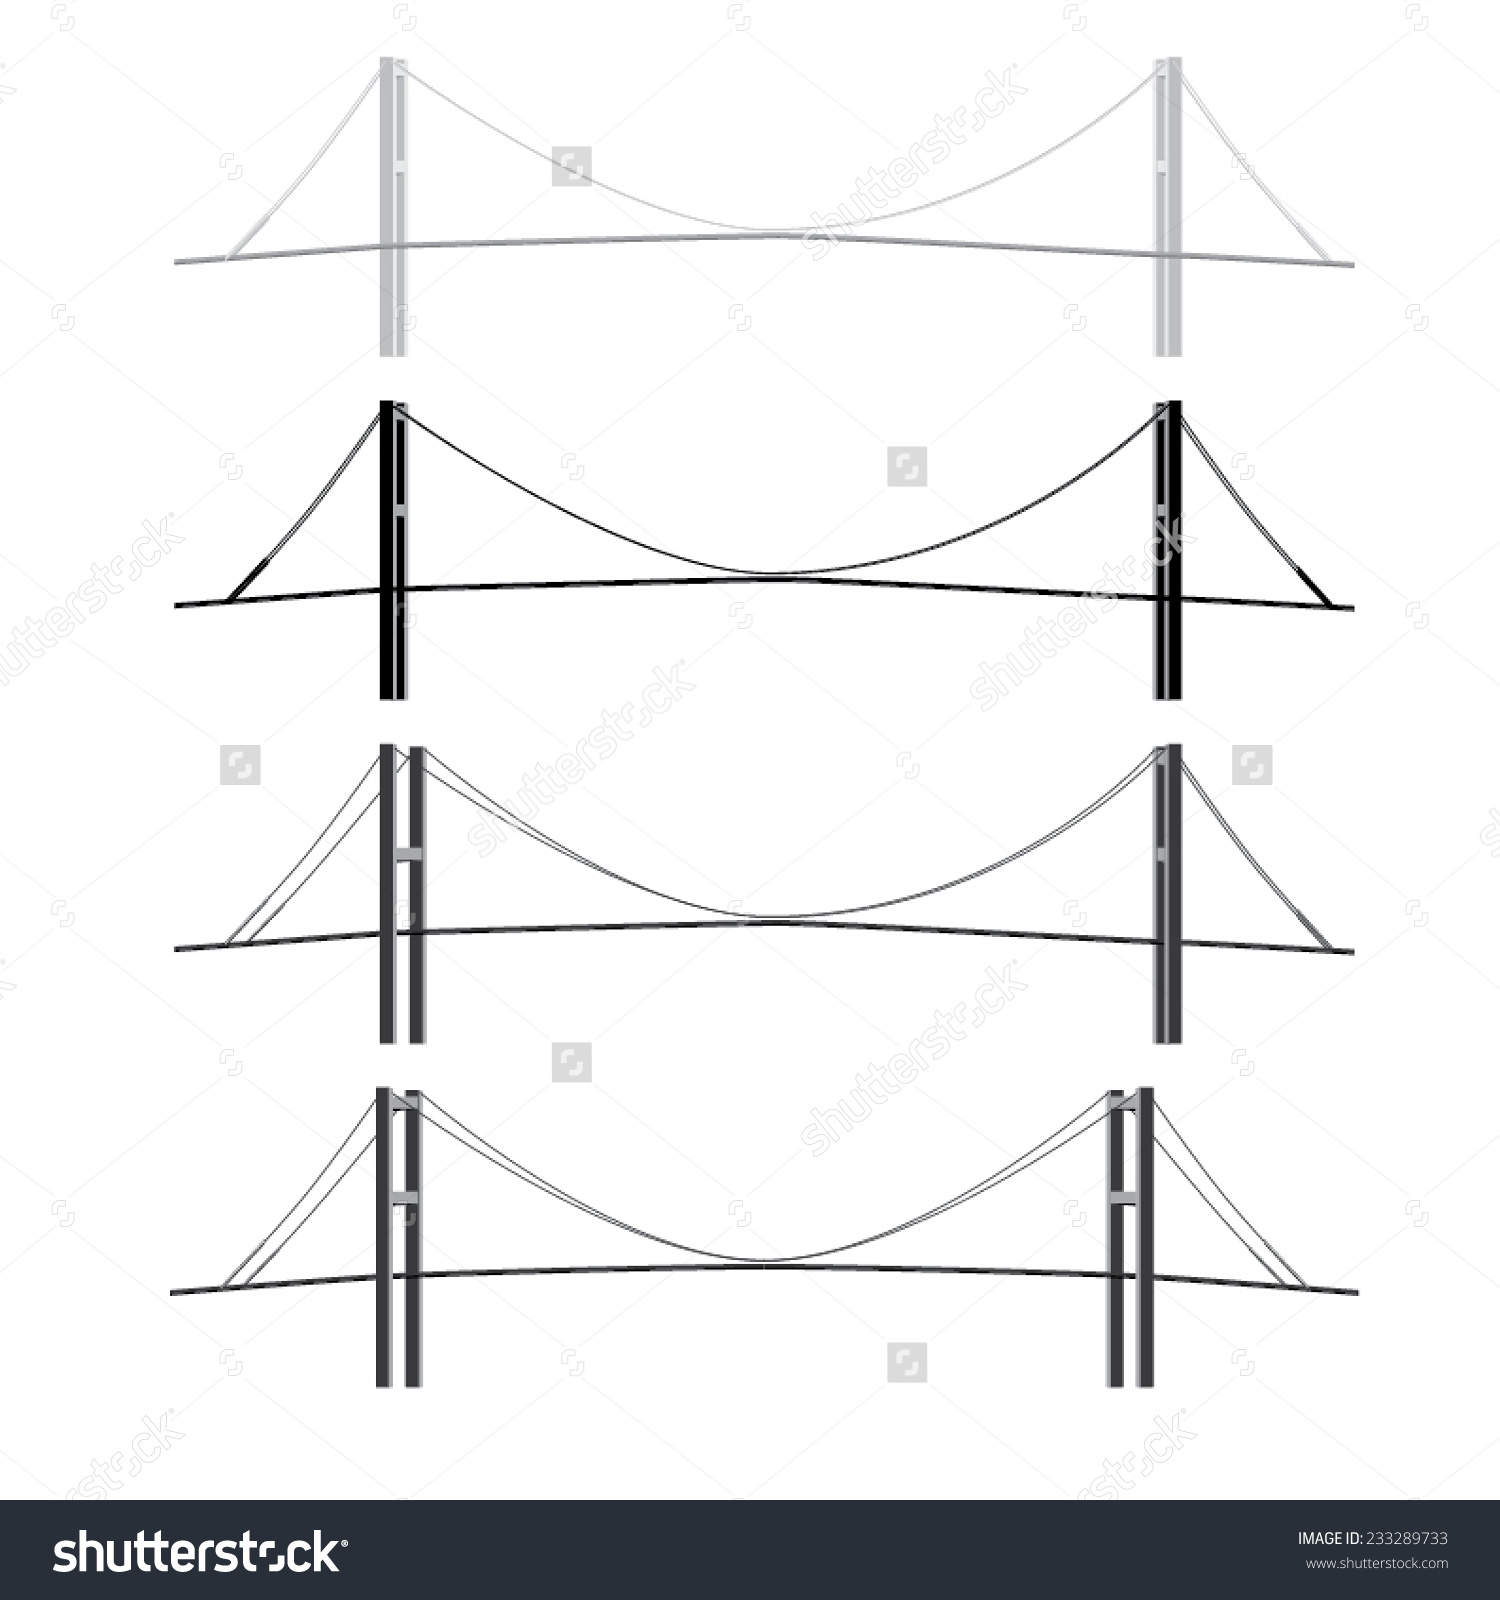 Vector Bosphorus Bridge Istanbul Turkey Stock Vector 233289733.